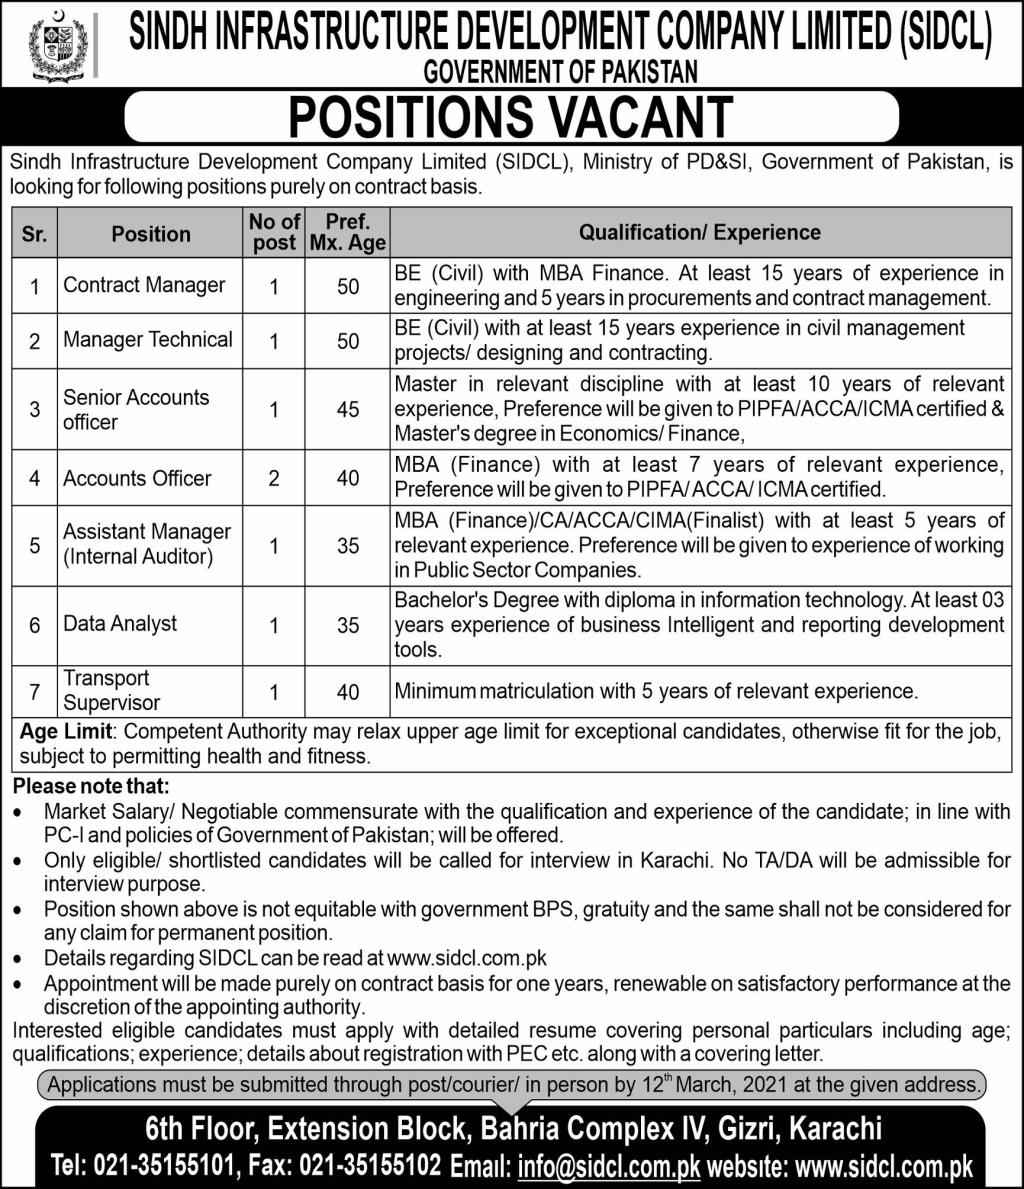 Sindh Infrastructure Development Company Limited SIDCL Jobs 2021 For Accounts Officer, Transport Supervisor & more